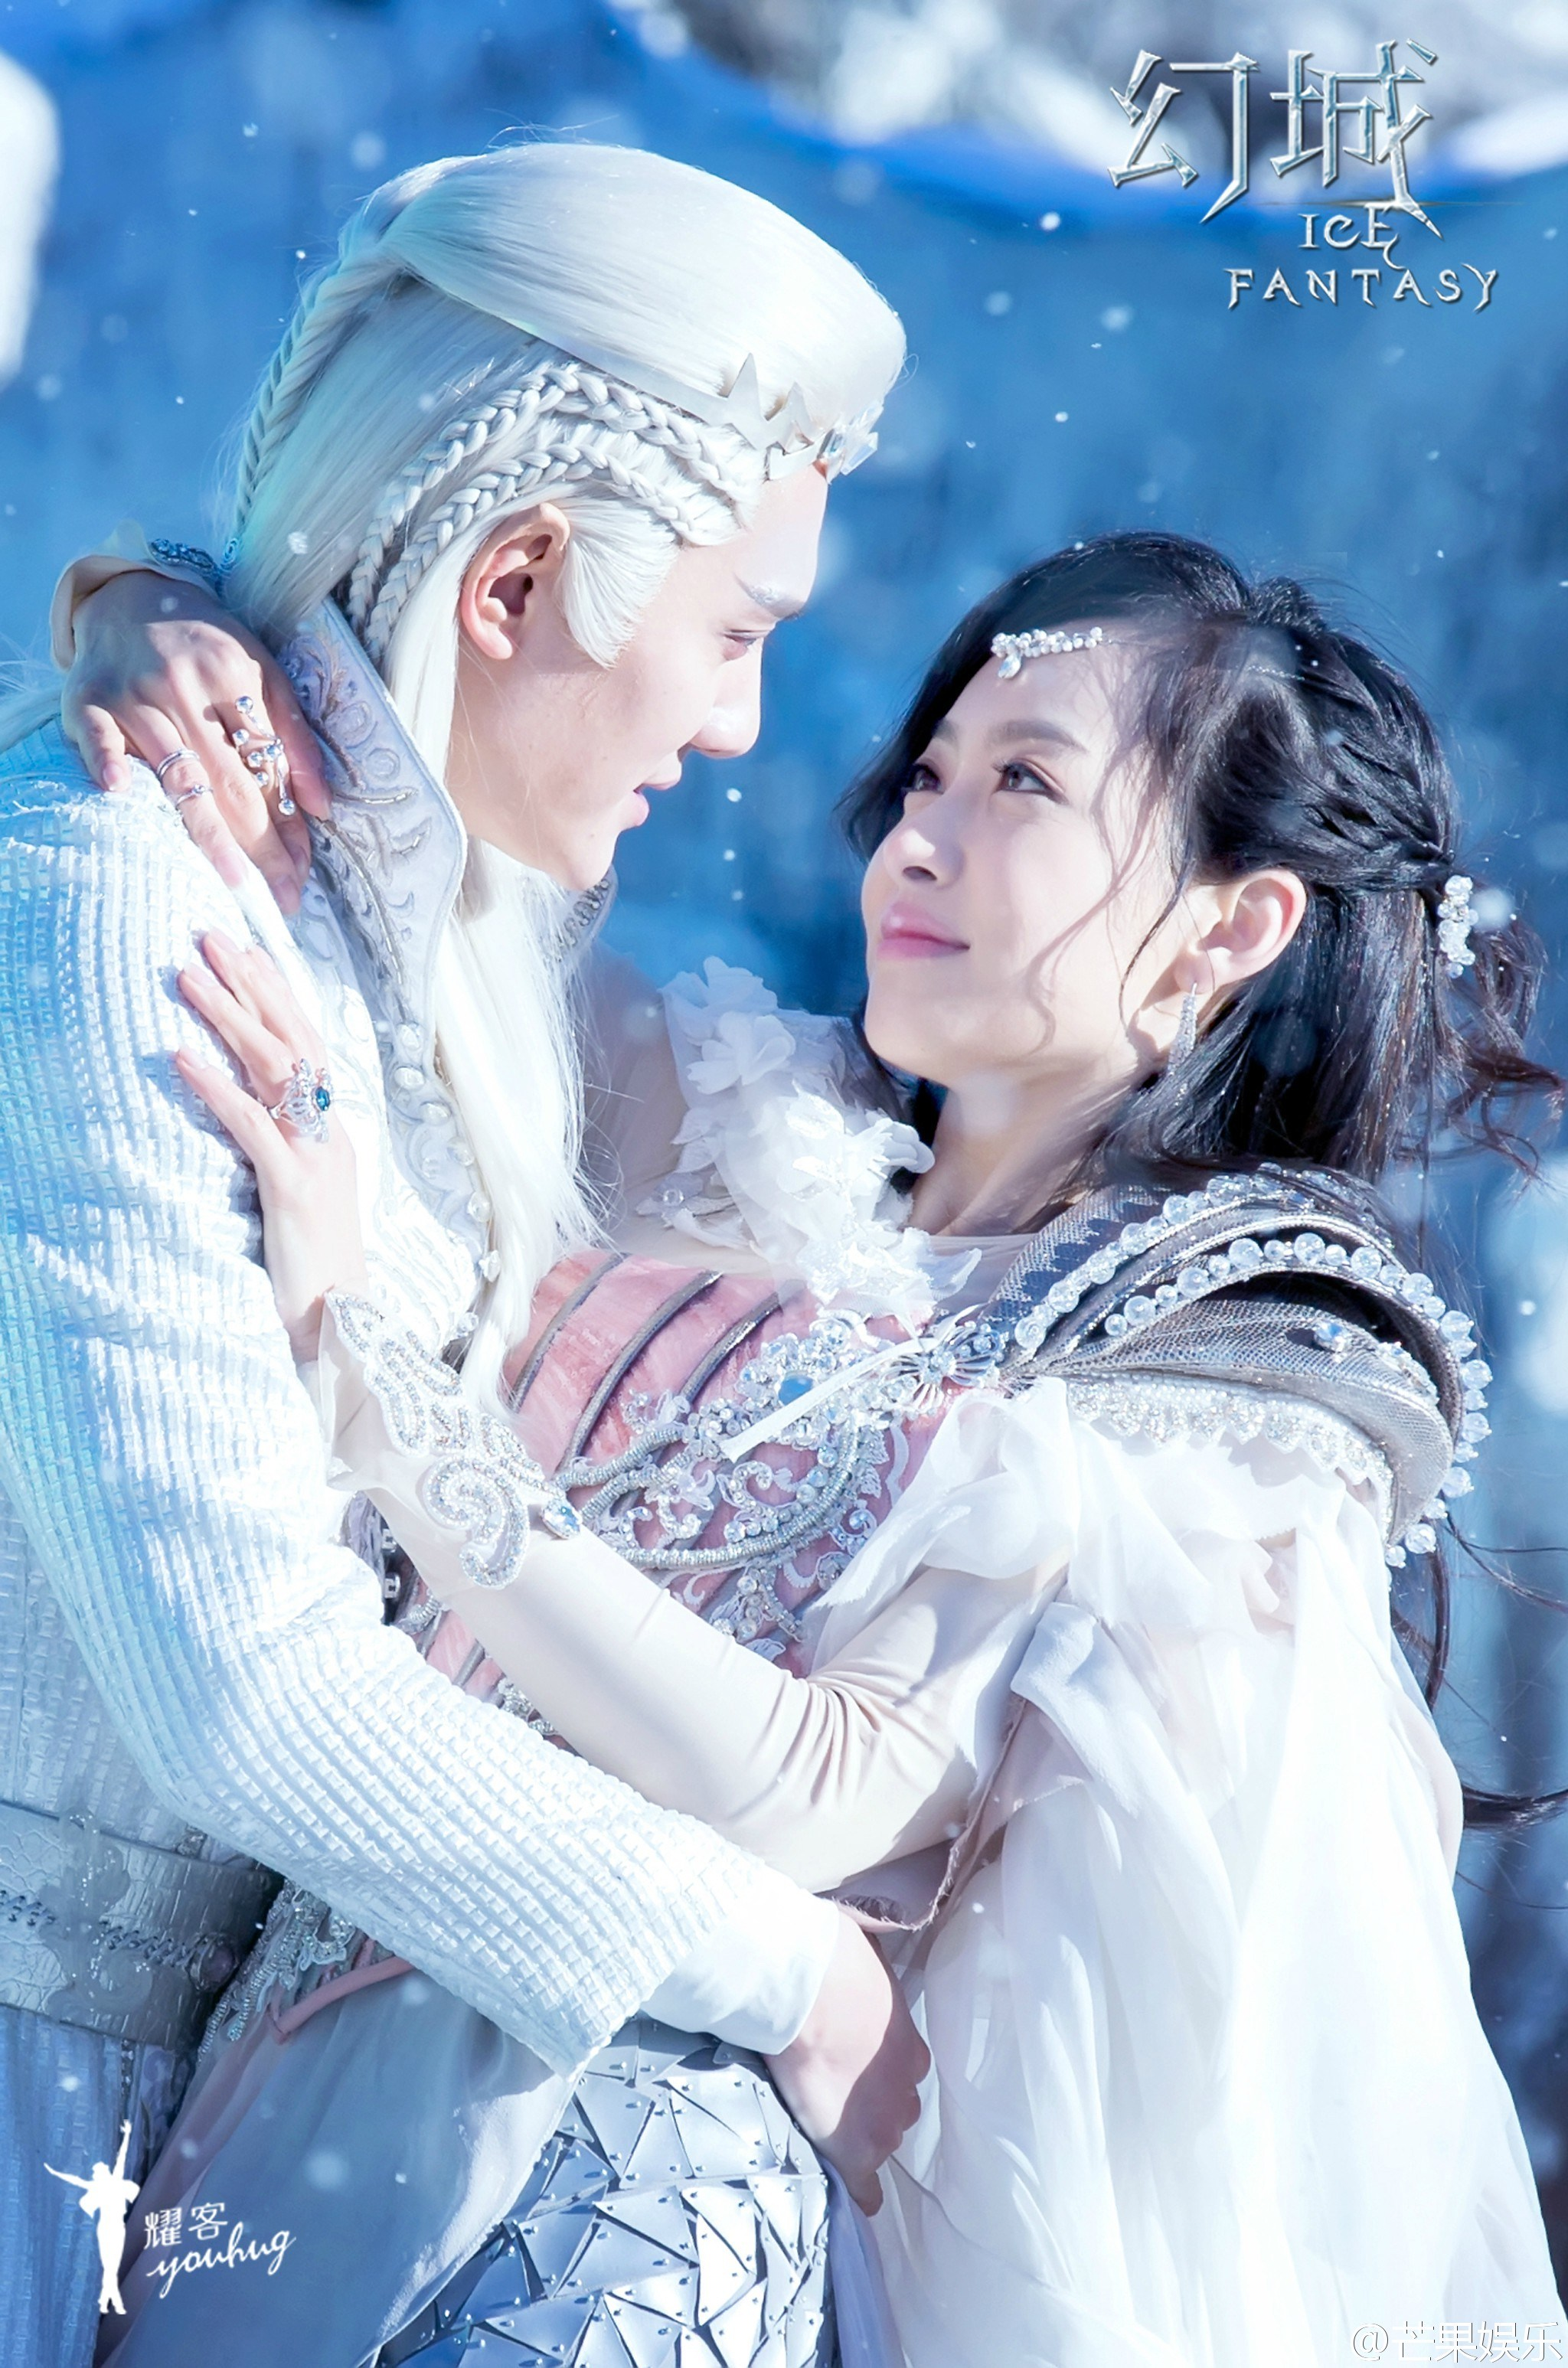 f(x)s Victorias Sweet Kiss Scene Revealed In Ice Fantasy Stills